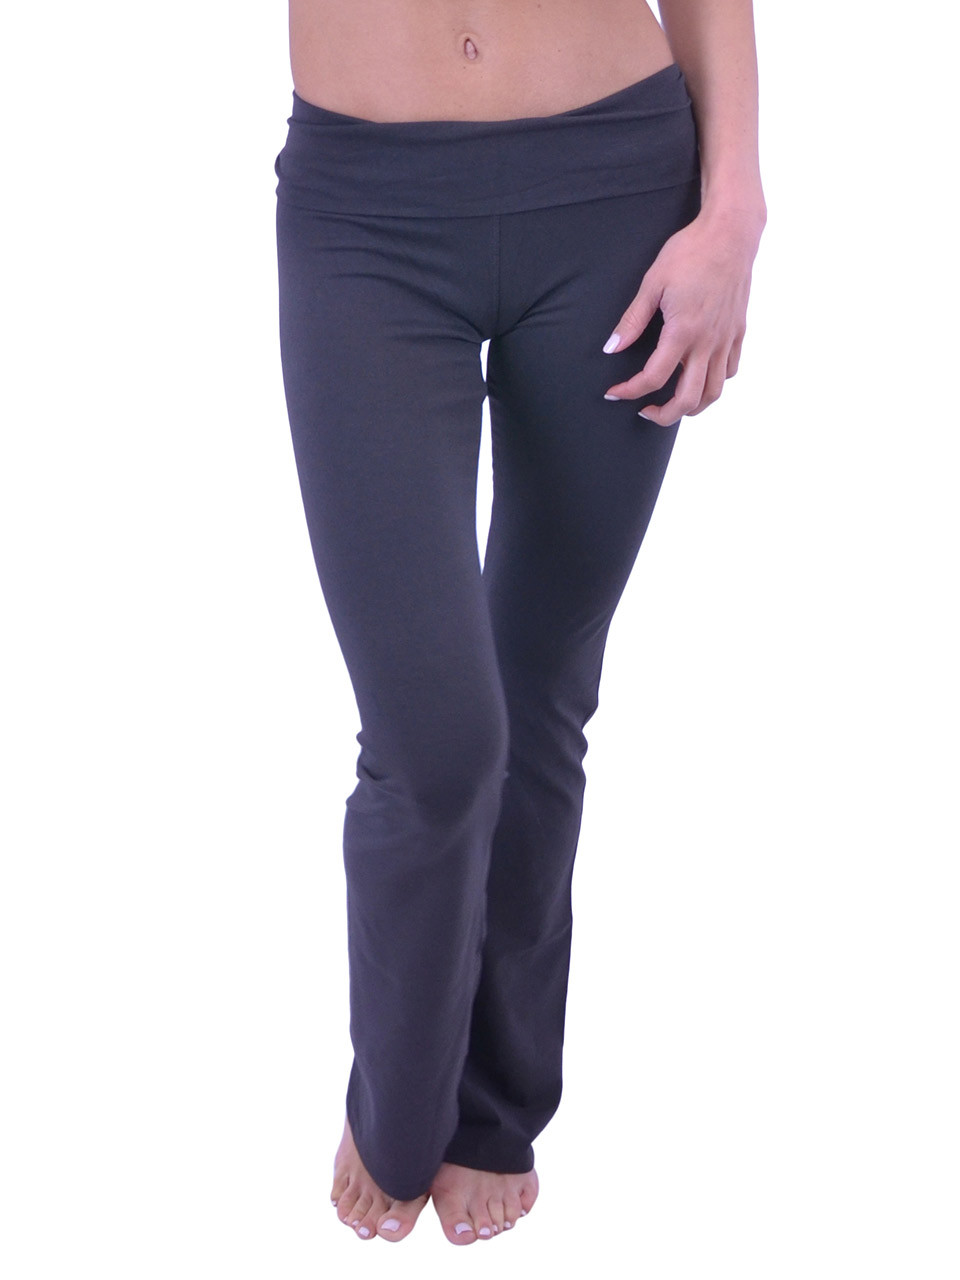 7d66f737a8e Vivian s Fashions Yoga Pants - Full Length (Misses and Misses Plus Sizes) - Vivian s  Fashions